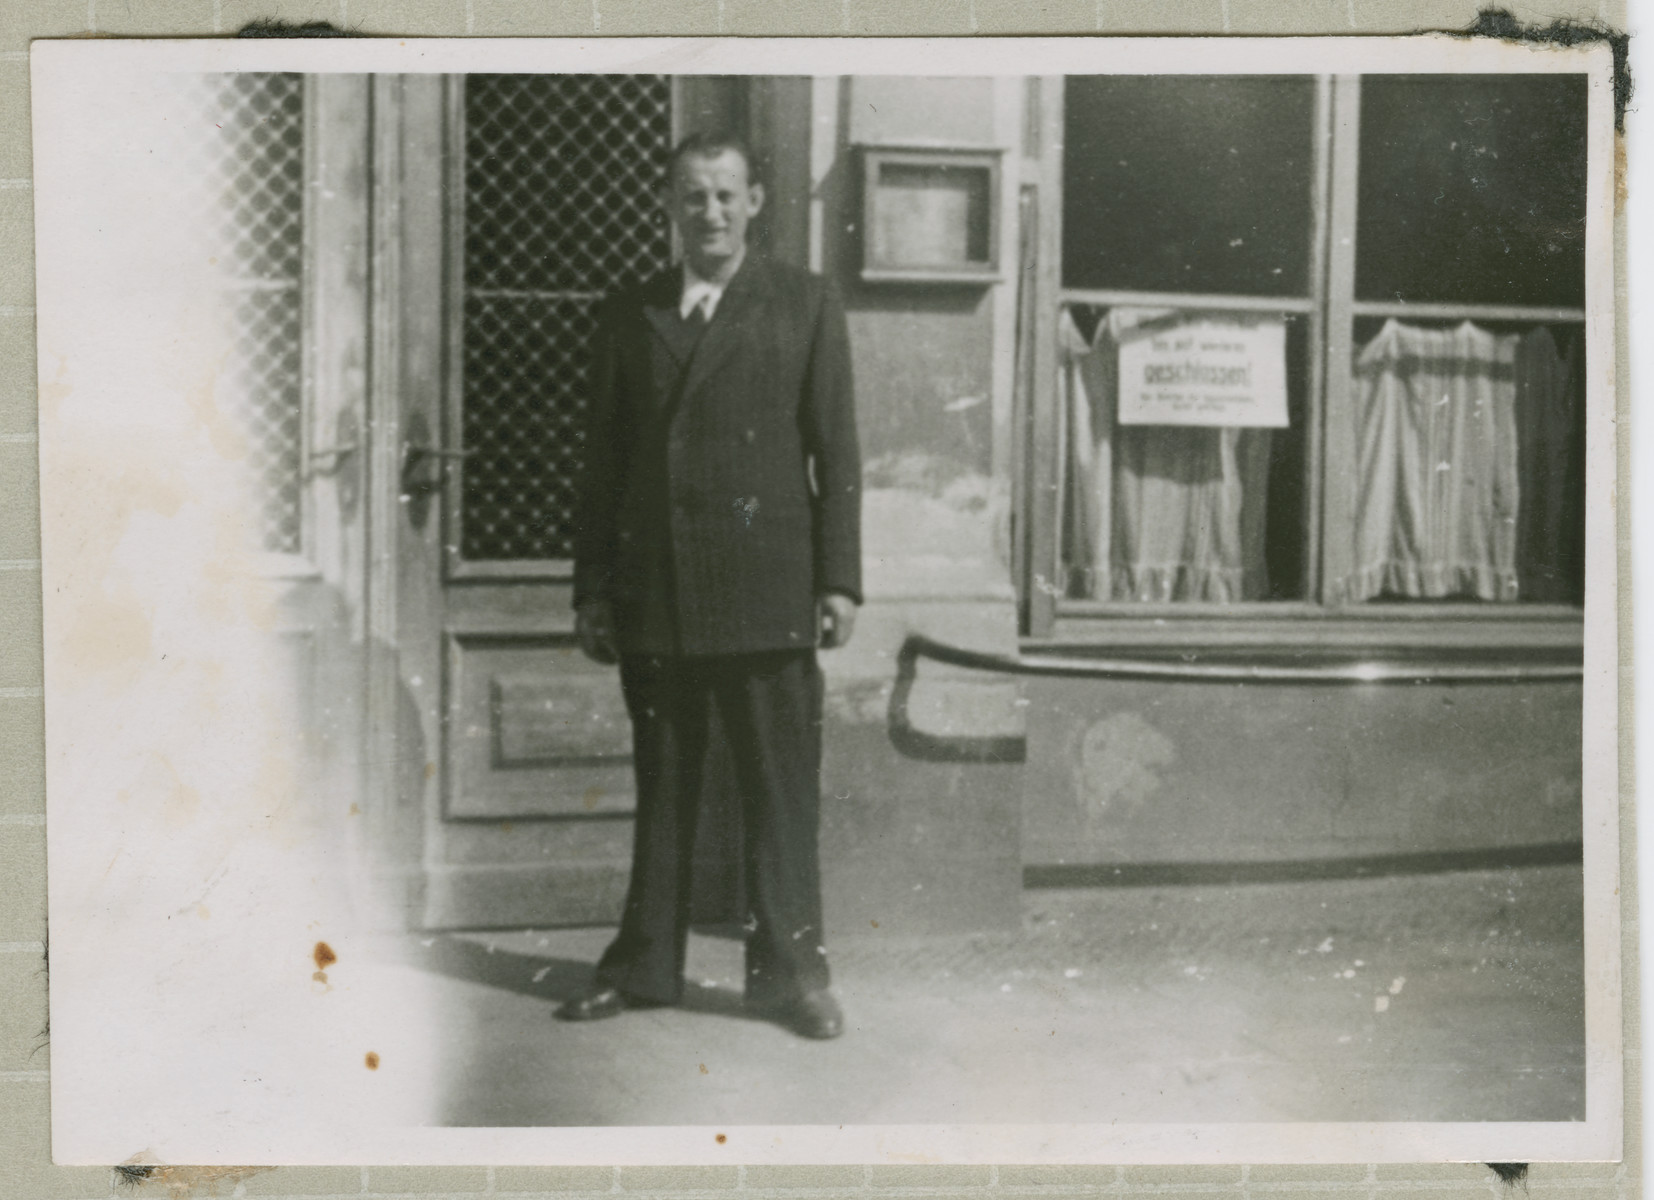 Salo Bratman stands in front of a building, probably after the war.